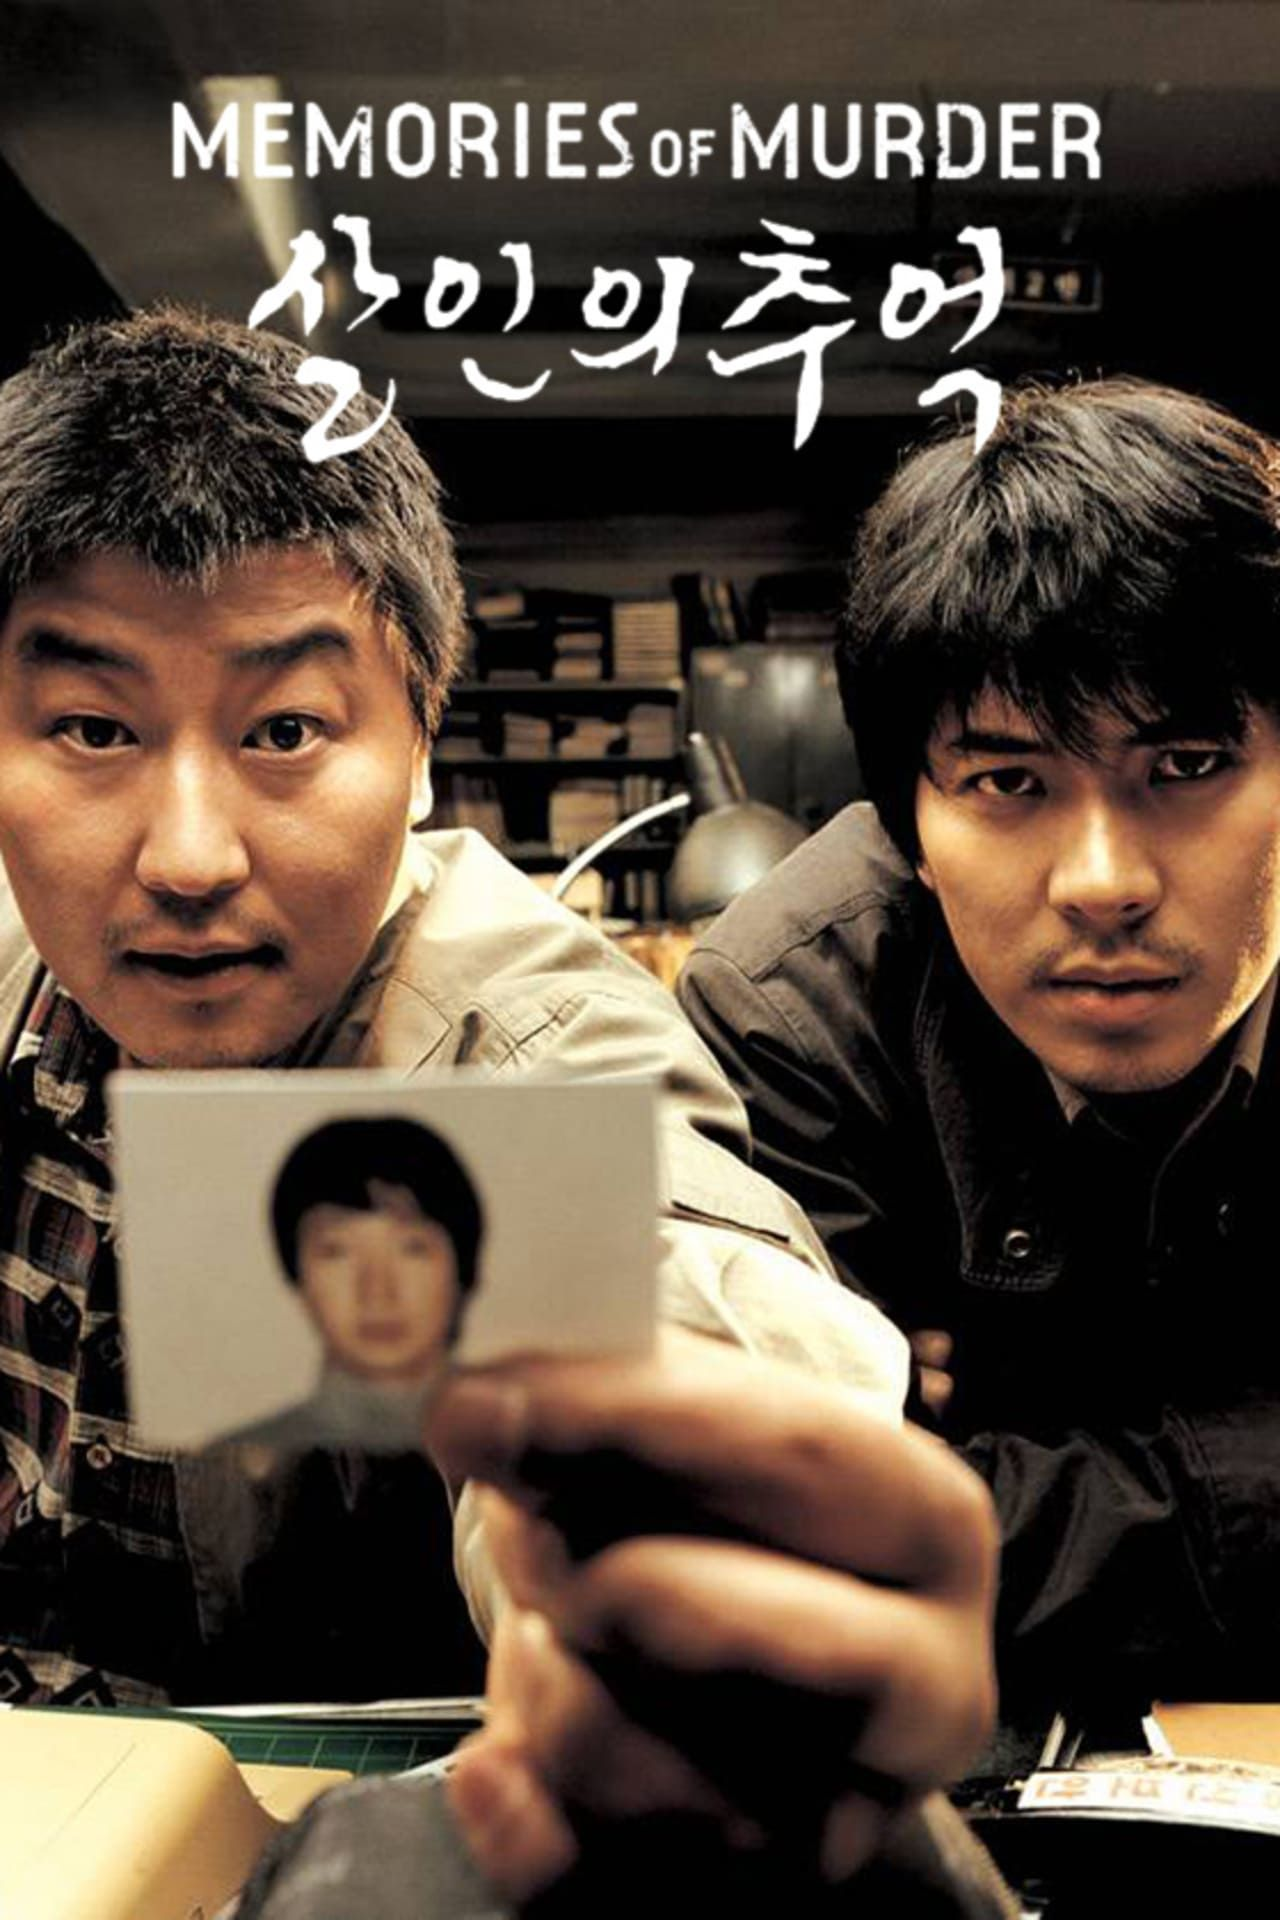 Pin On Download Full Movie Hd Streaming Online Free Watch